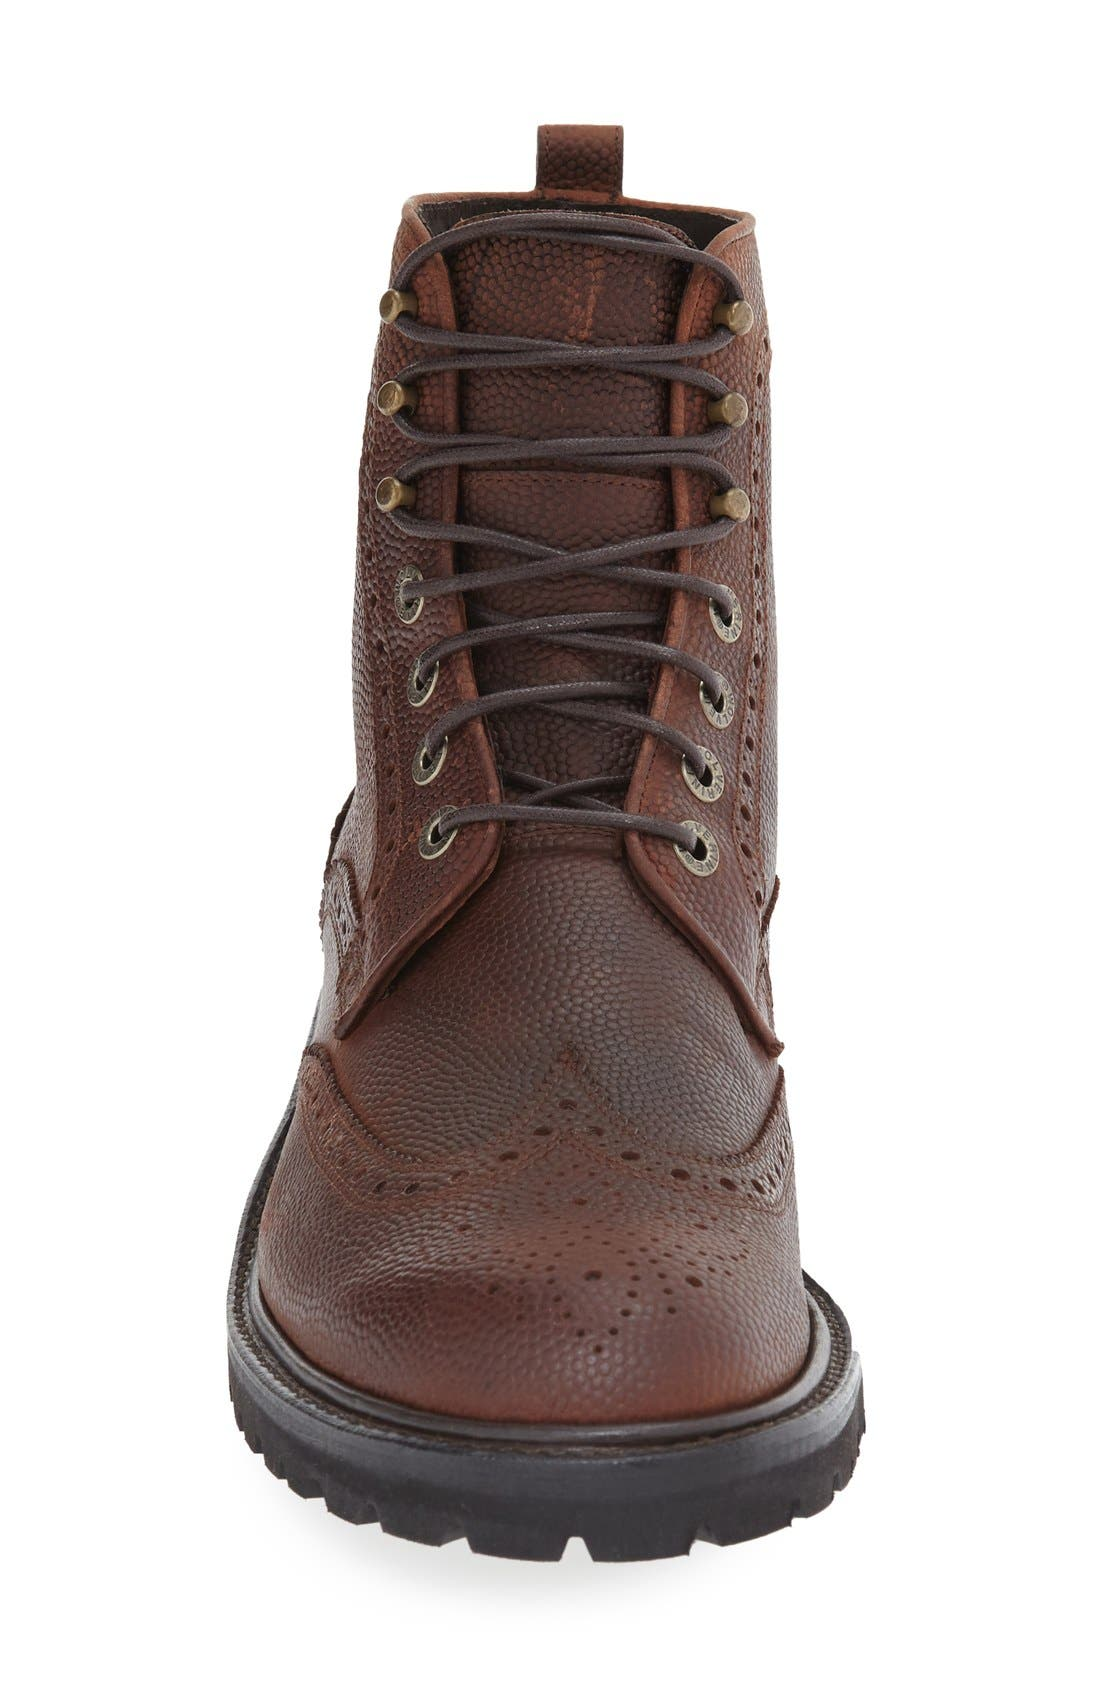 WOLVERINE,                             'Percy' Wingtip Boot,                             Alternate thumbnail 3, color,                             200